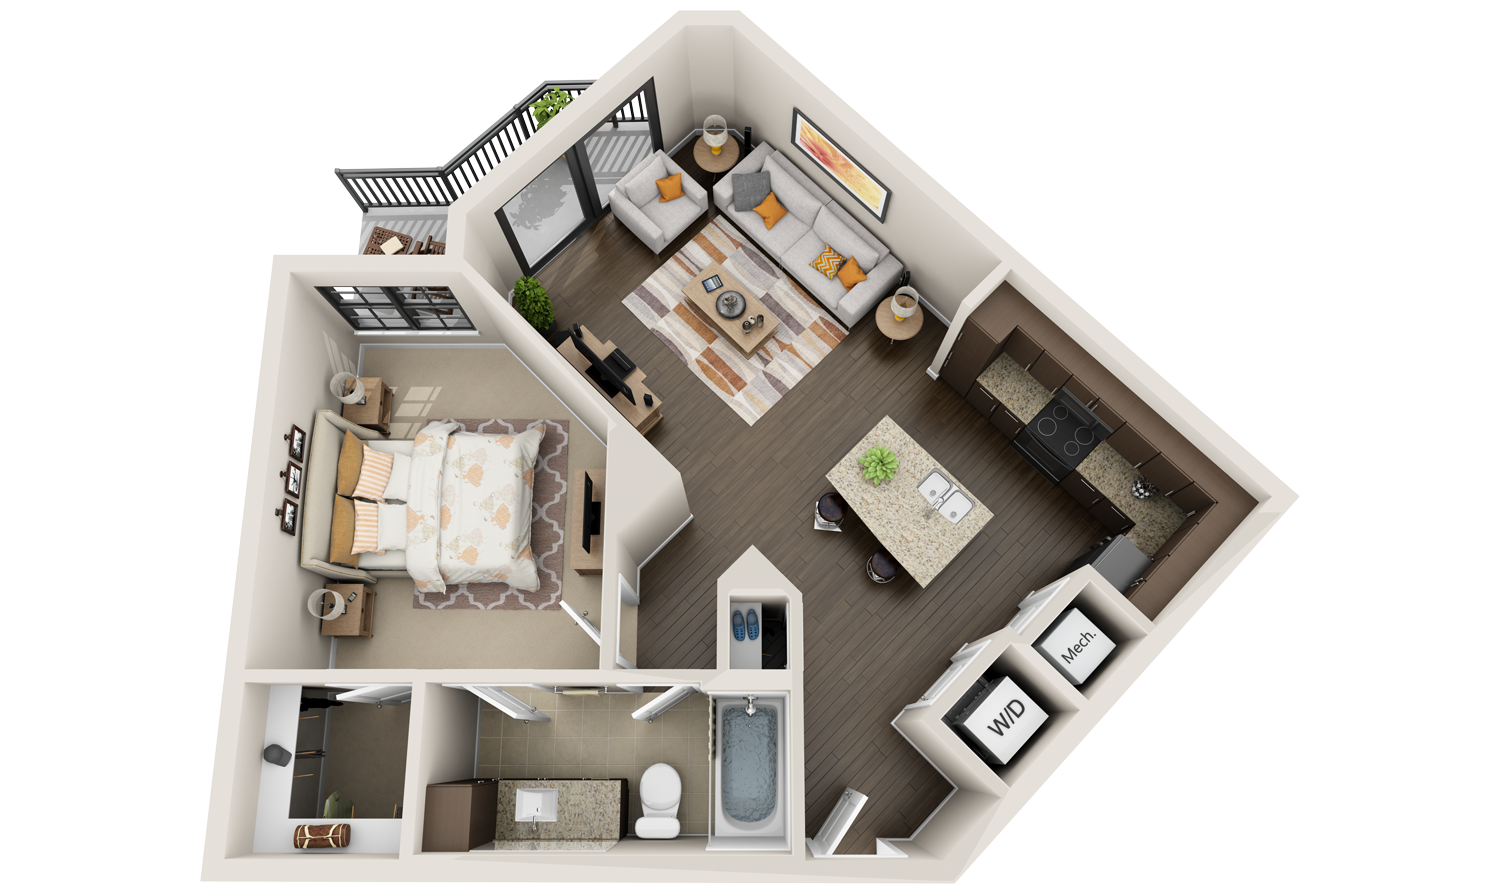 Best 3d floor plans for apartments virtual tours we for 3d virtual tour house plans